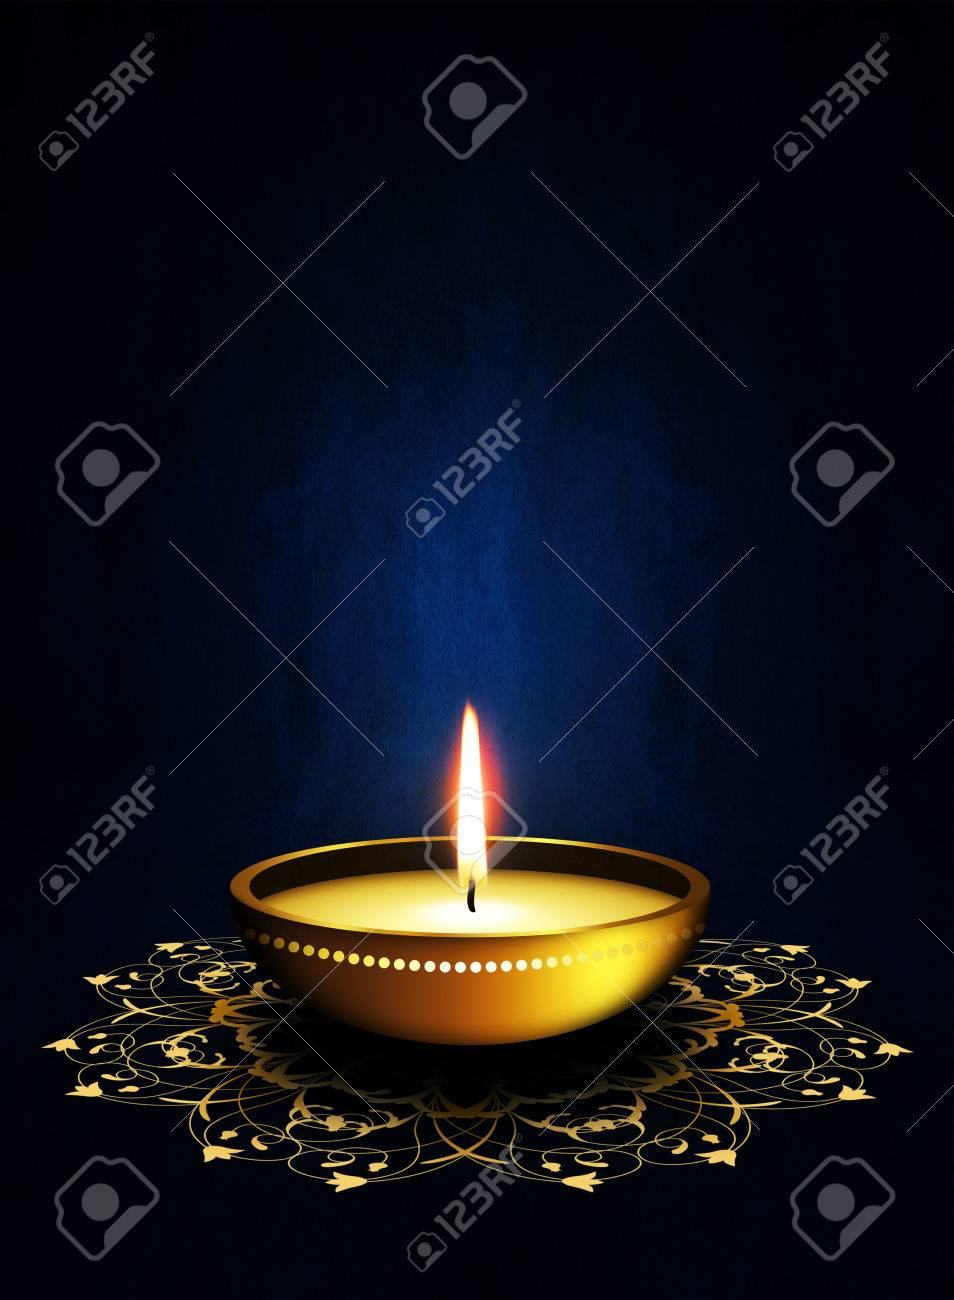 Oil lamp with place for diwali greetings over dark blue background oil lamp with place for diwali greetings over dark blue background stock photo 22973506 kristyandbryce Image collections